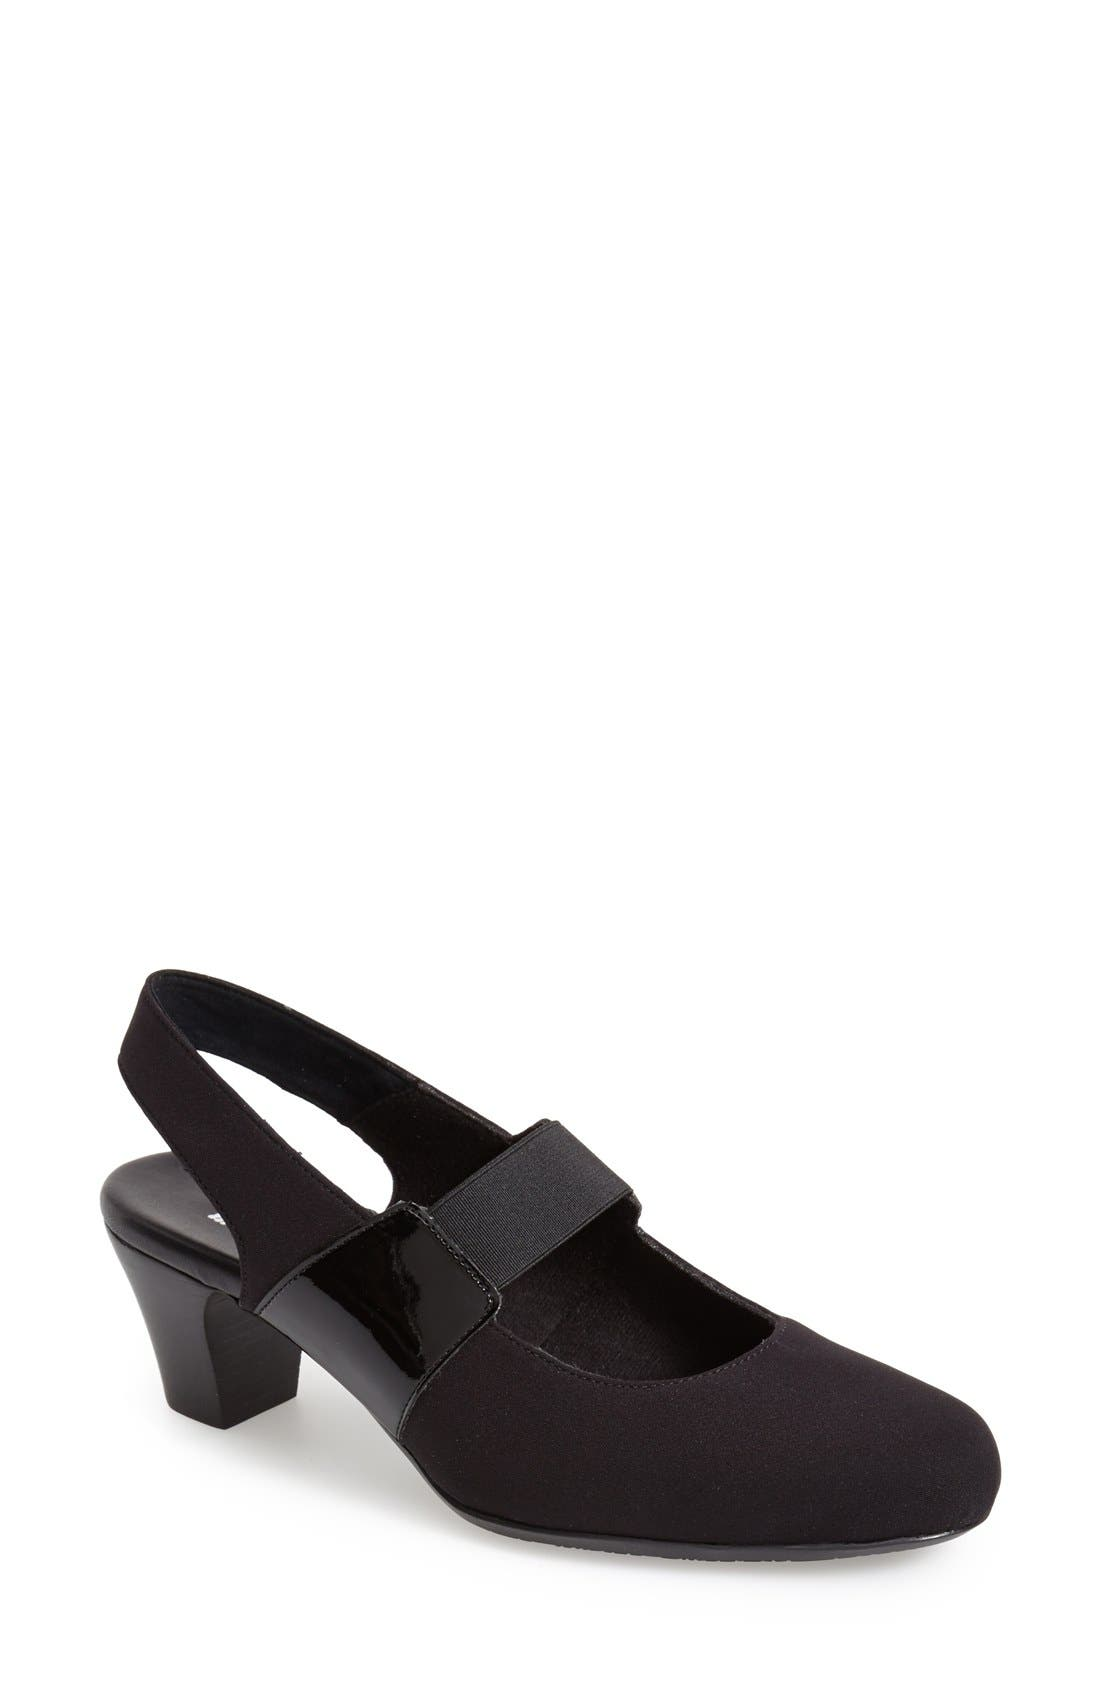 'Ella' Slingback Pump,                         Main,                         color, BLACK